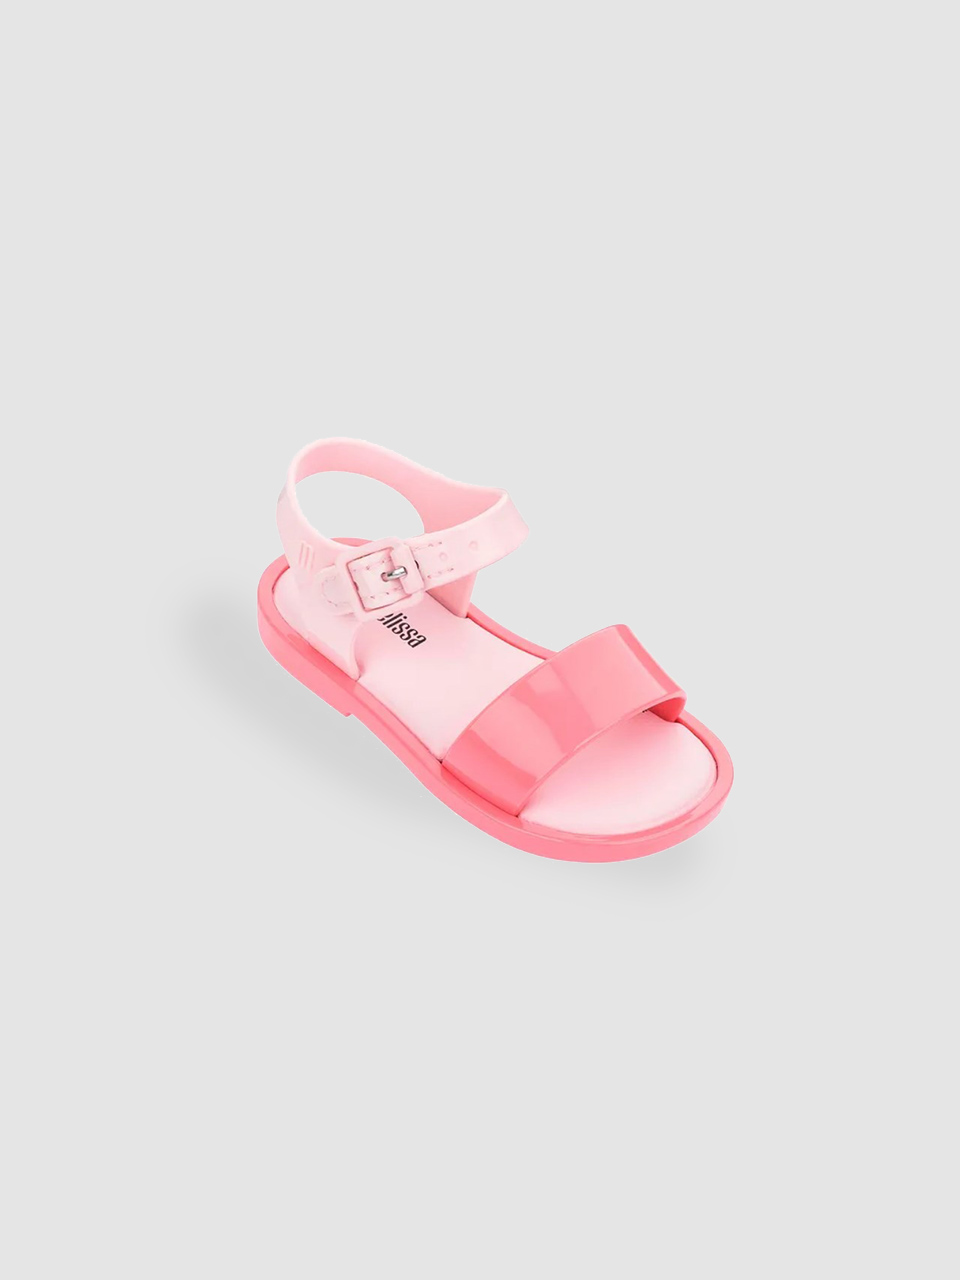 MINI MAR SANDAL IV